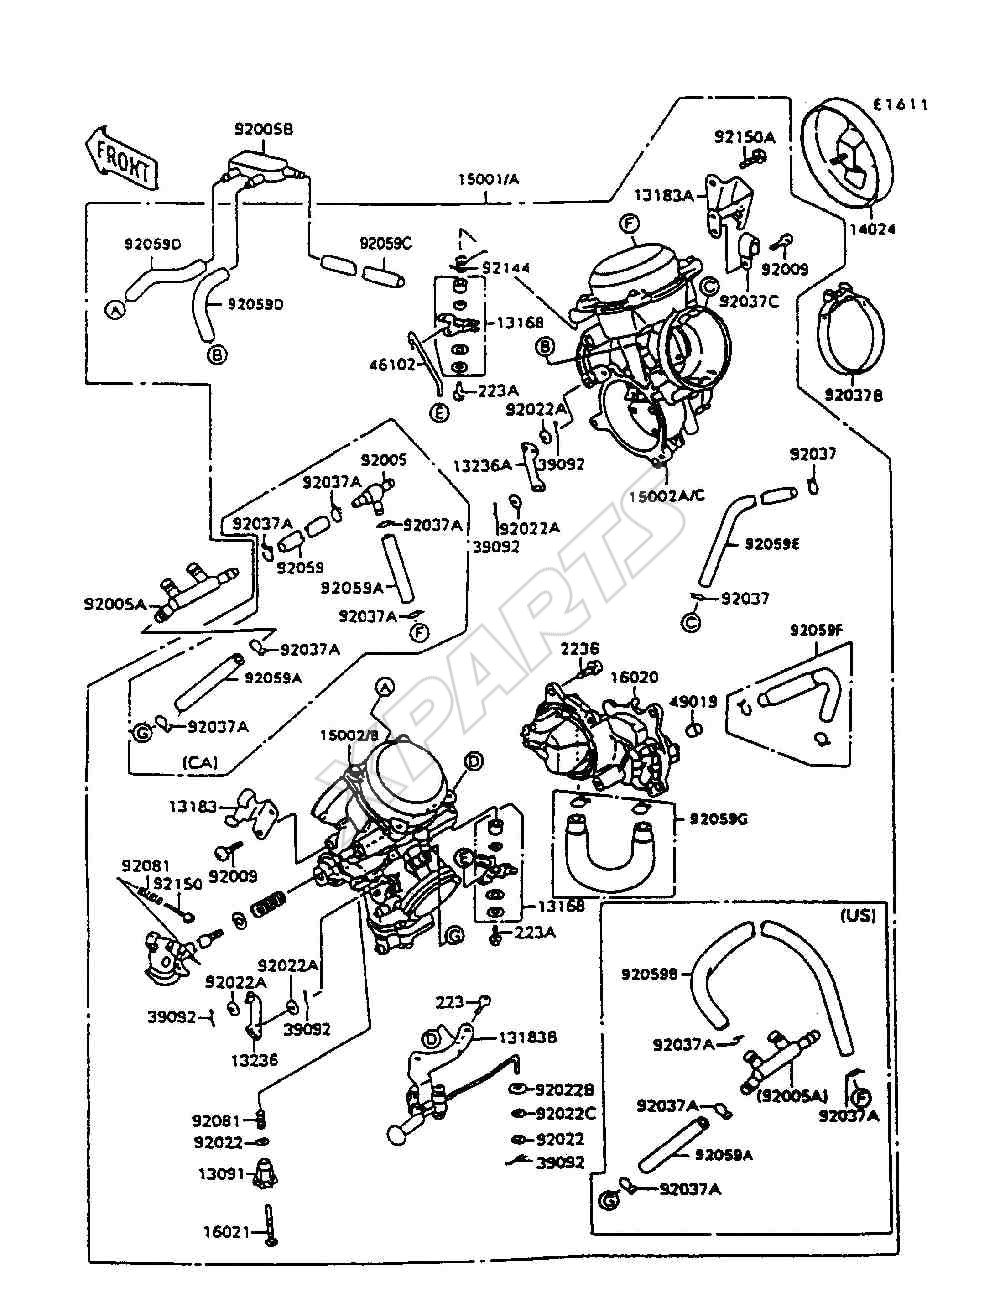 1986 Kawasaki Vulcan 750 Wiring Diagram in addition Razor Pr200 Wiring Diagram further 2003 Kawasaki Vulcan Vn2000 Electrical Wiring likewise Kawasaki Vn800 Vulcan 800 Wiring Diagram as well Budgit Hoist Wiring Diagram. on kawasaki vn 2000 motorcycle wiring diagrams